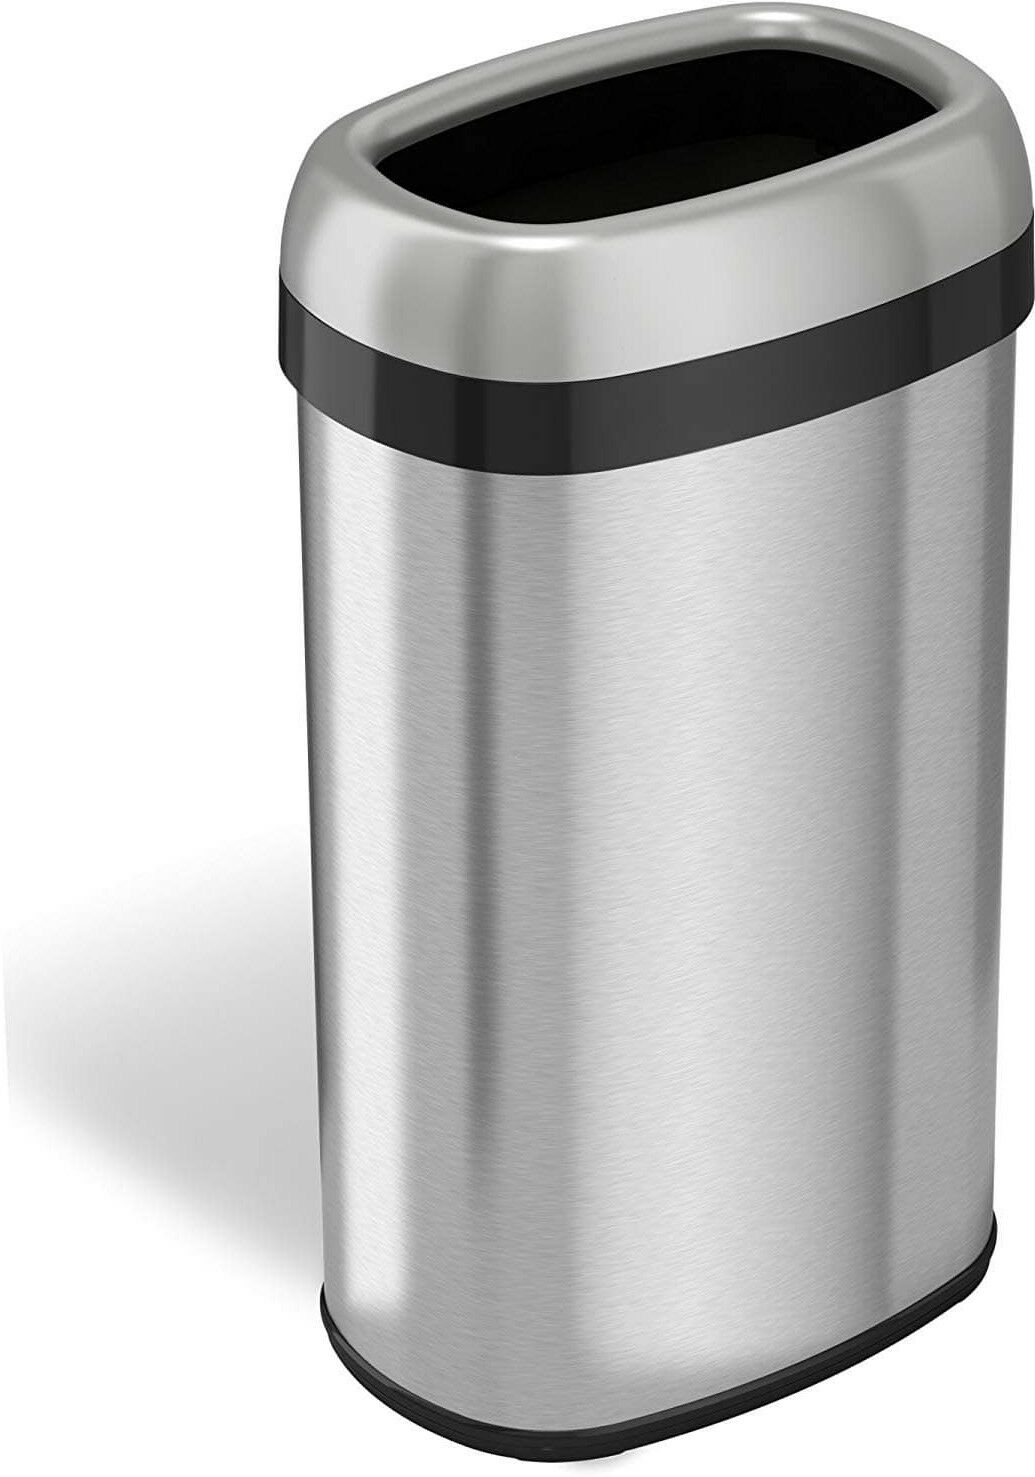 ITouchless 16 Gallon Dual-Deodorizer Oval Open Top Trash Can, Stainless Steel,